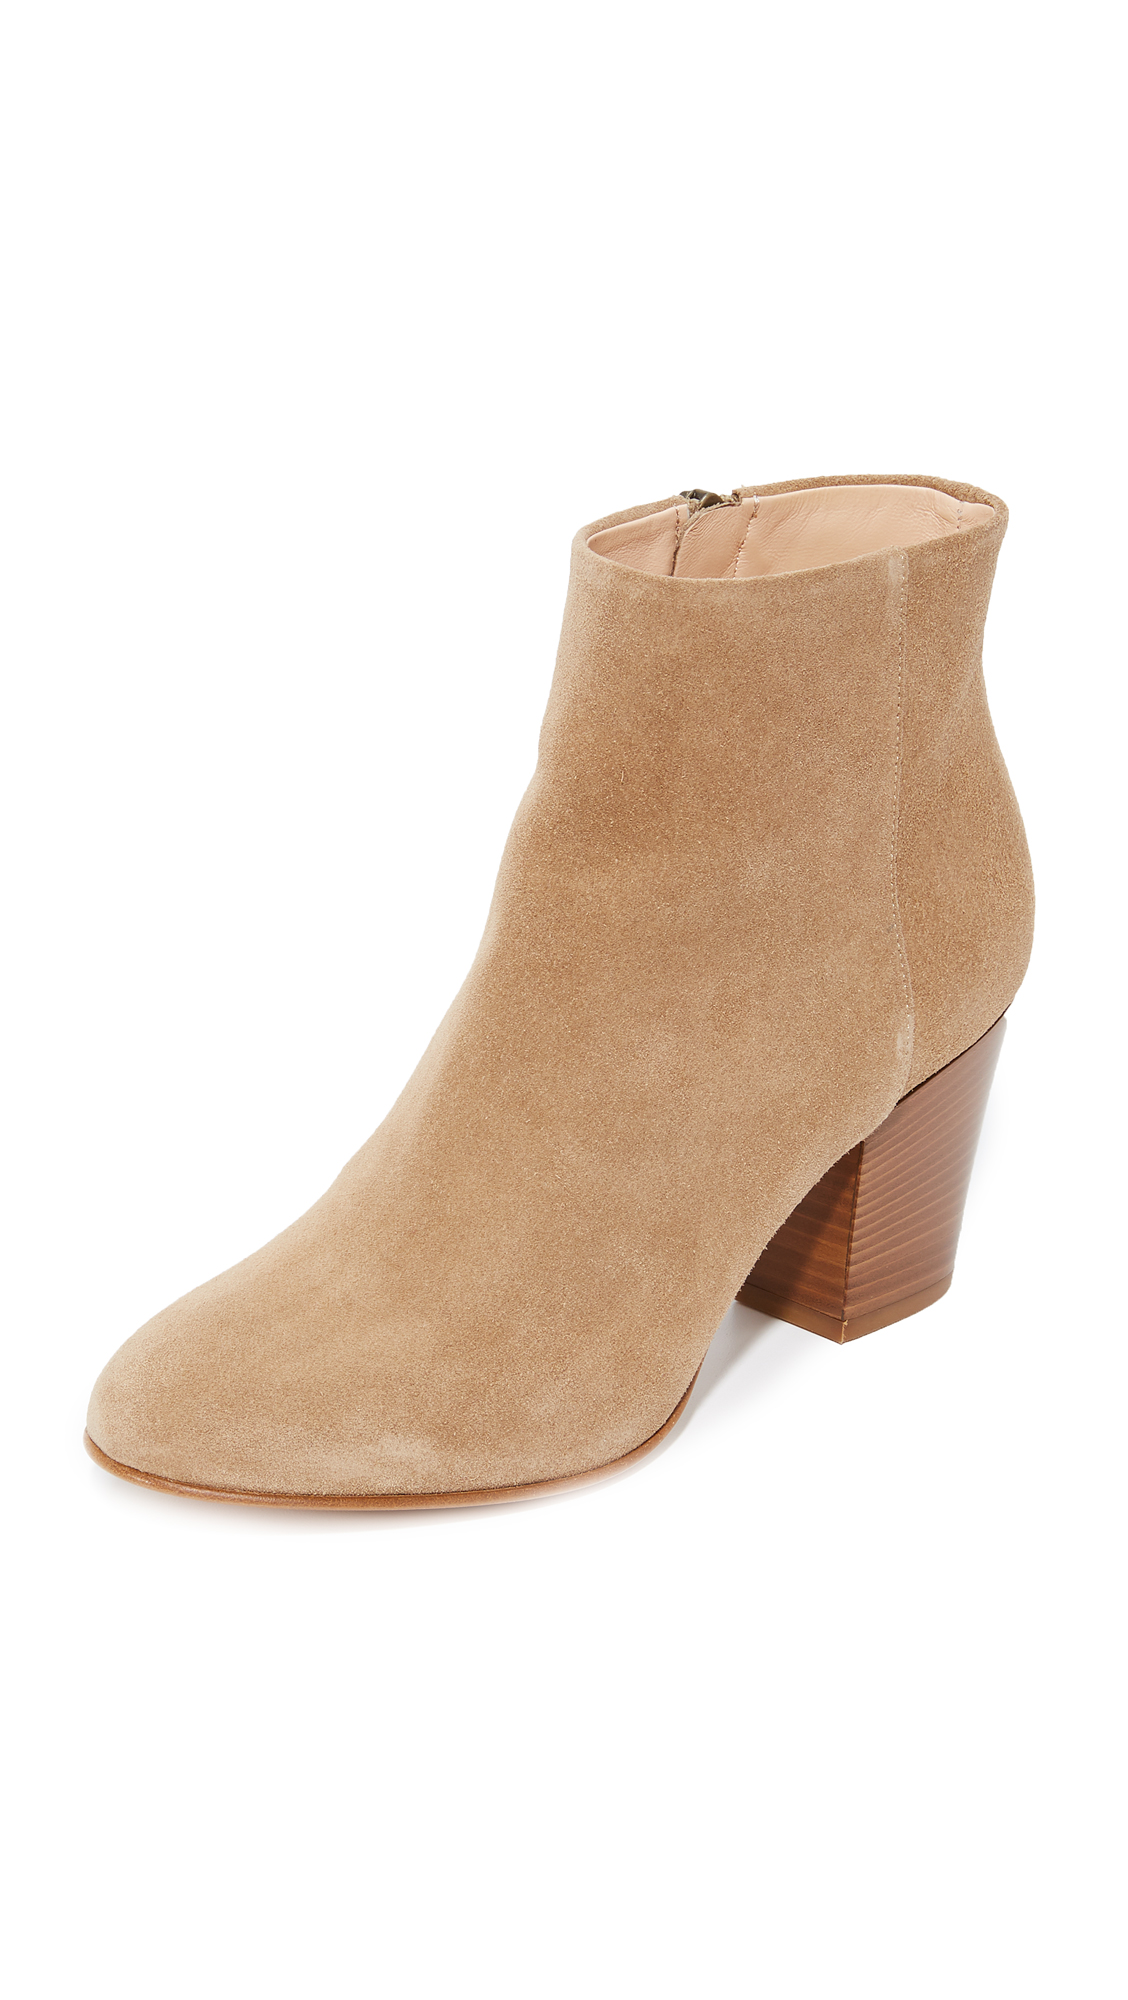 Club Monaco Rina Booties - Elephant